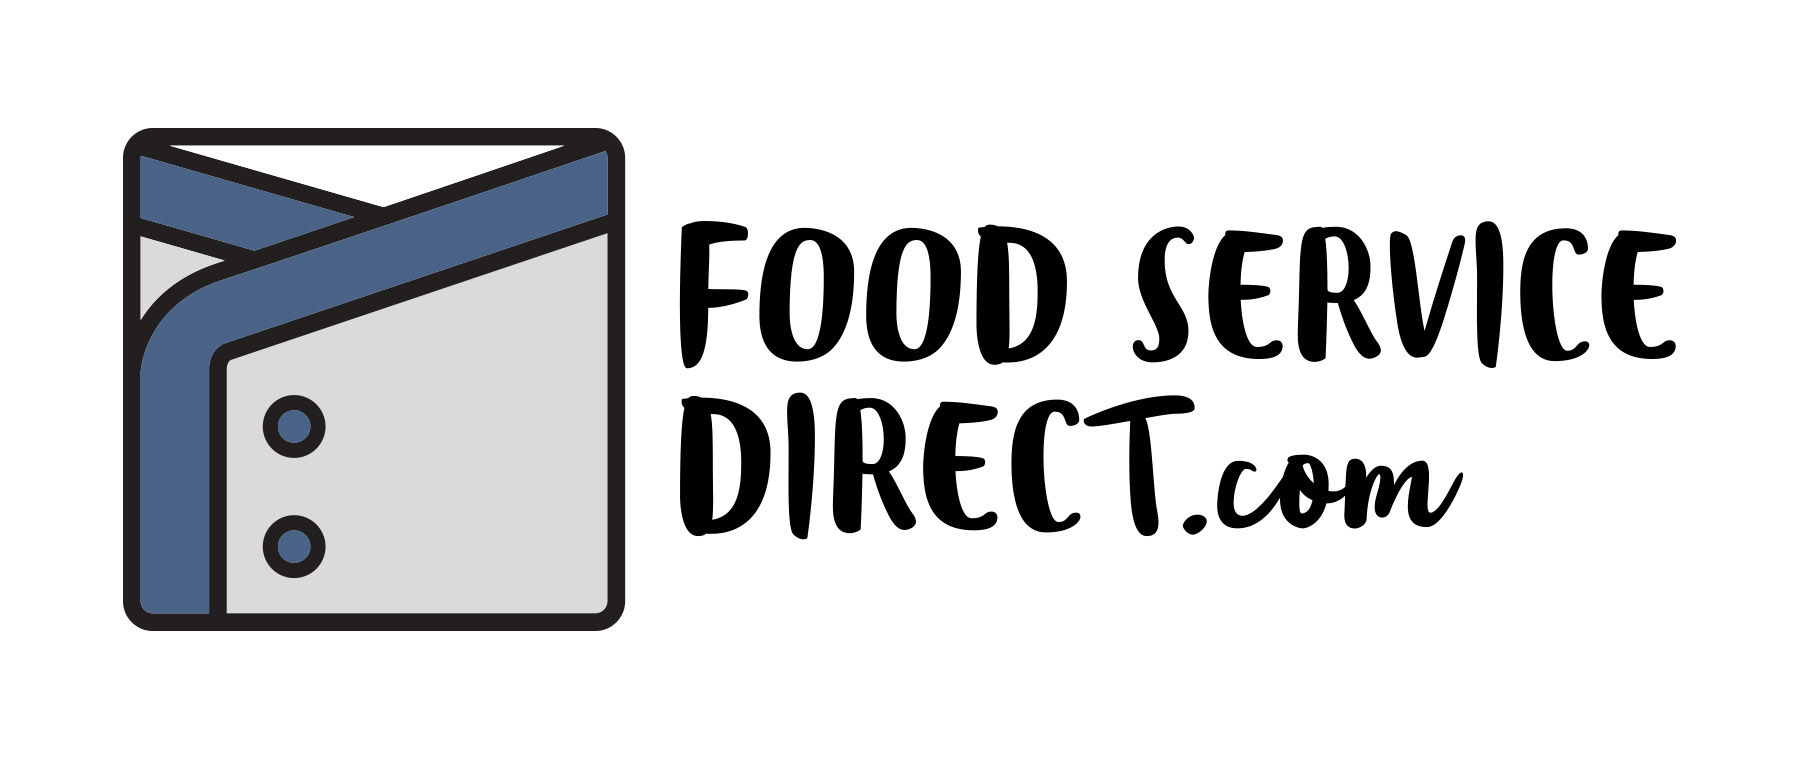 Food Service Direct Help Center home page